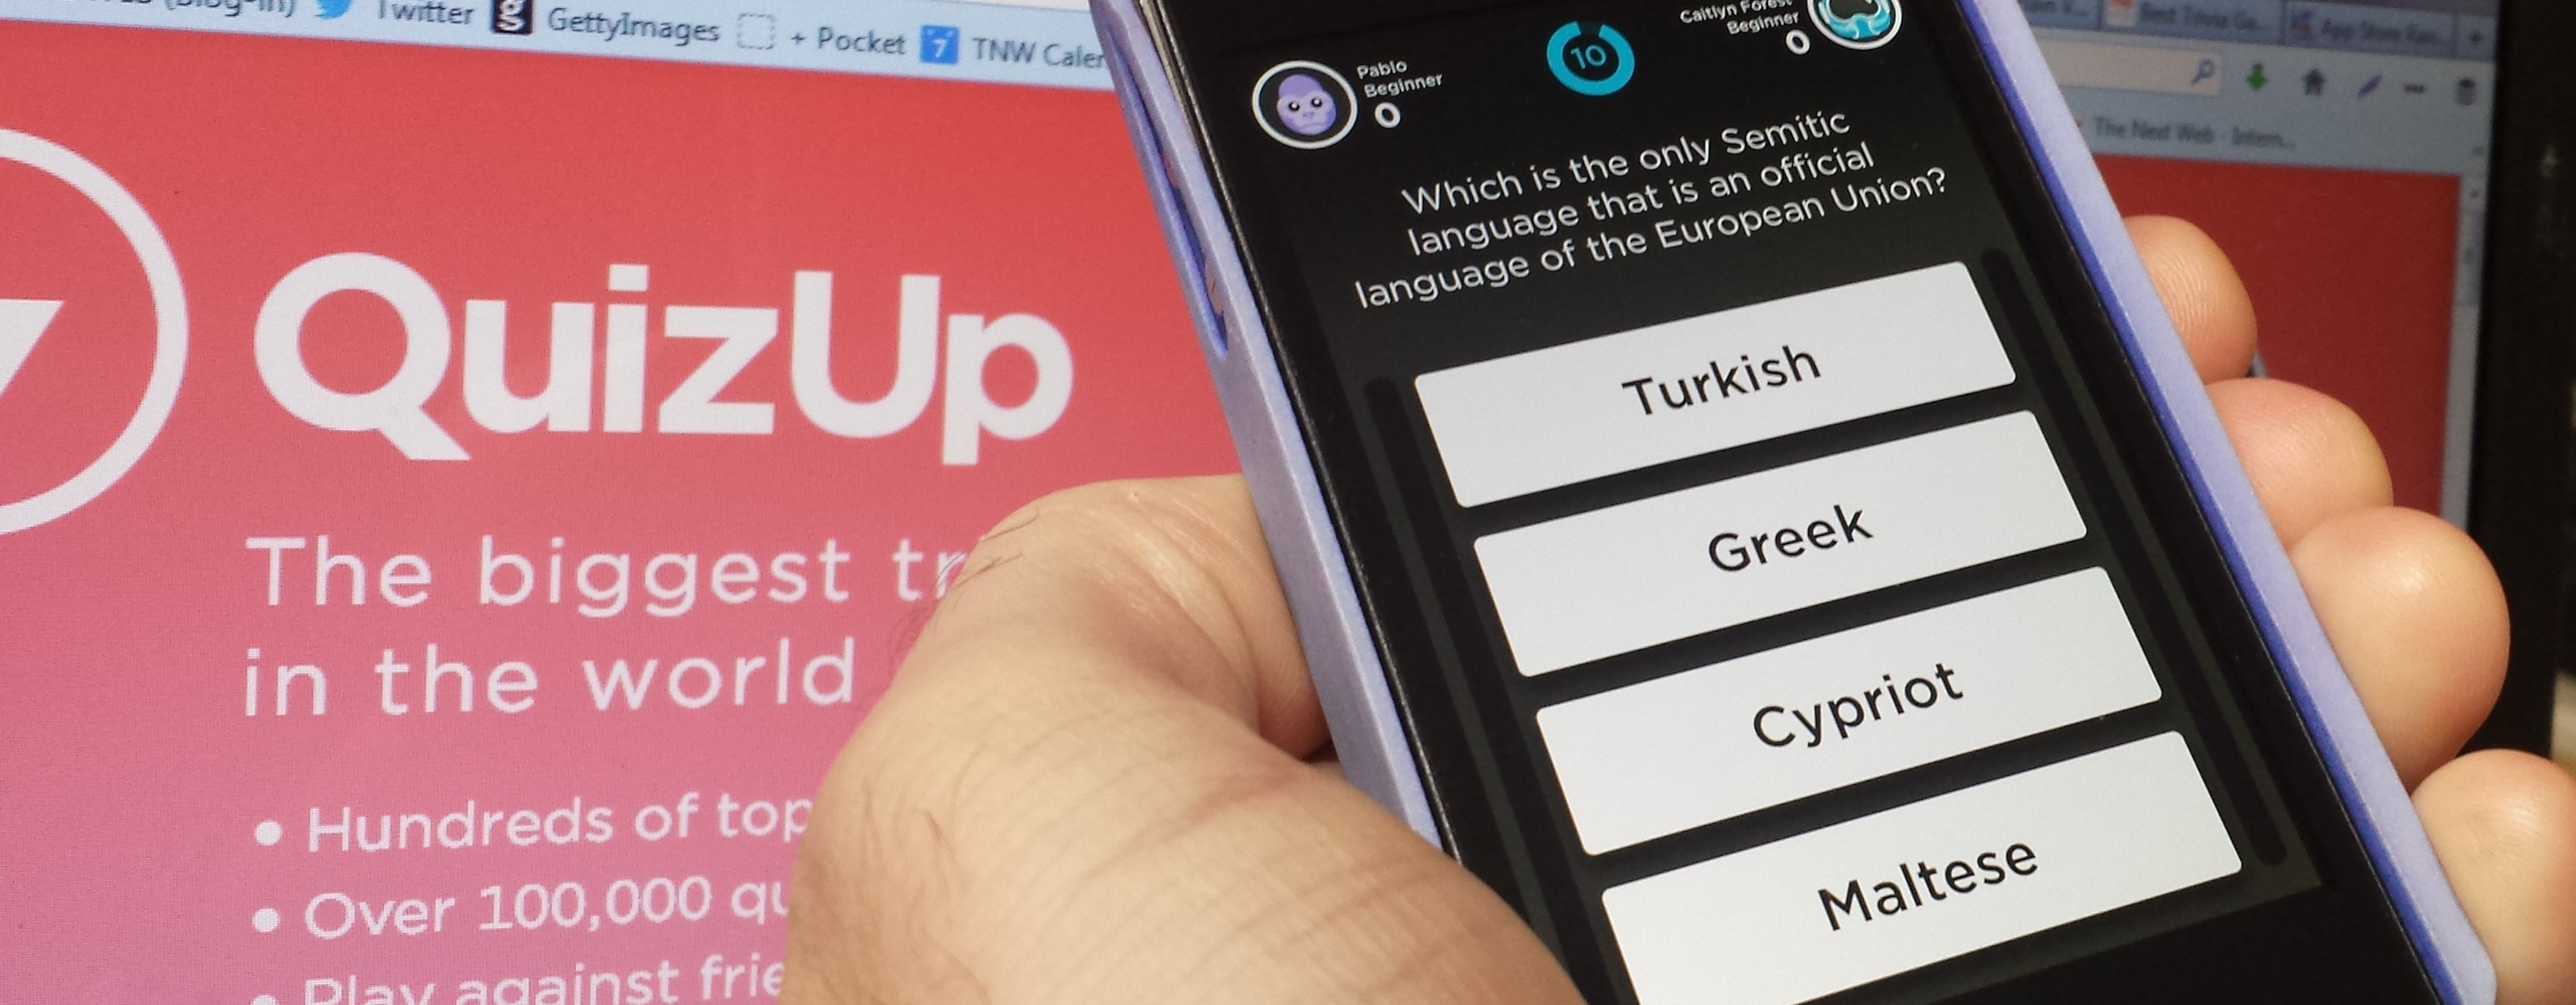 QuizUp Reportedly Sends User Data in Plain Text, Deceives Players